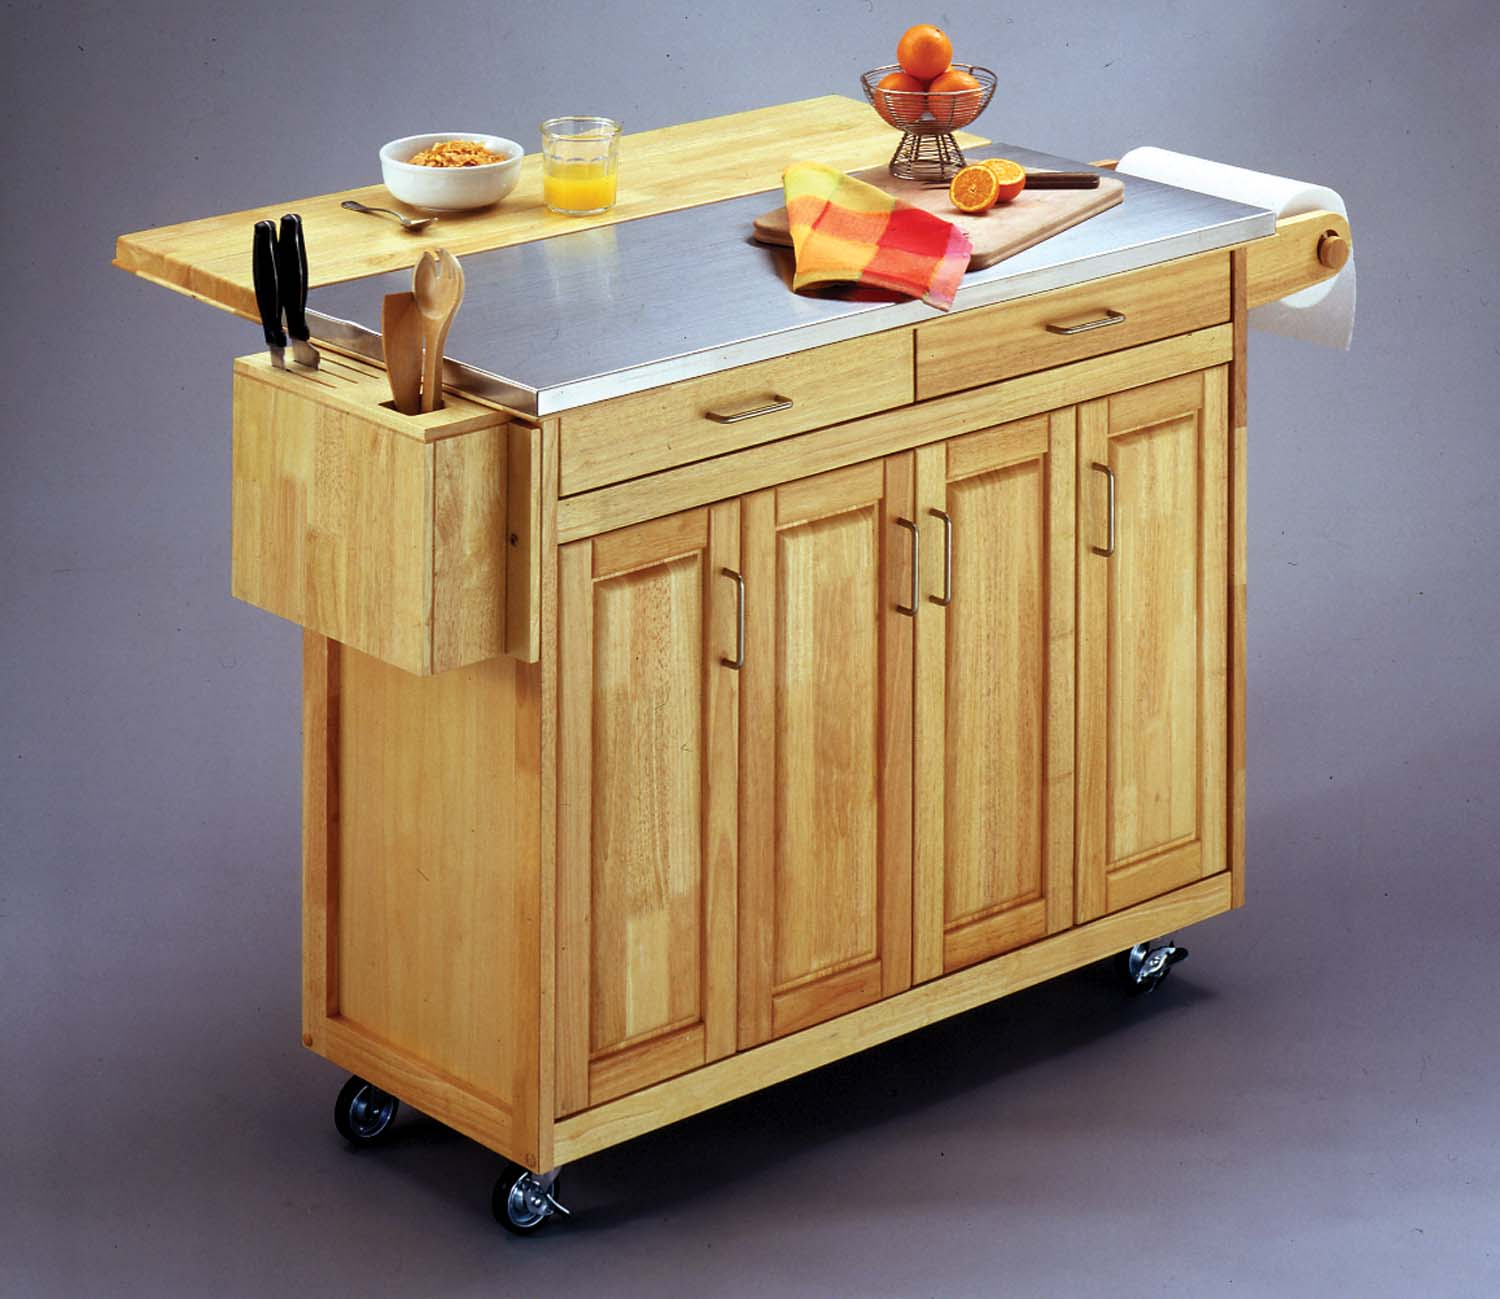 home-styles-kitchen-cart-with-breakfast-bar-kitchen-island_6_0.jpg